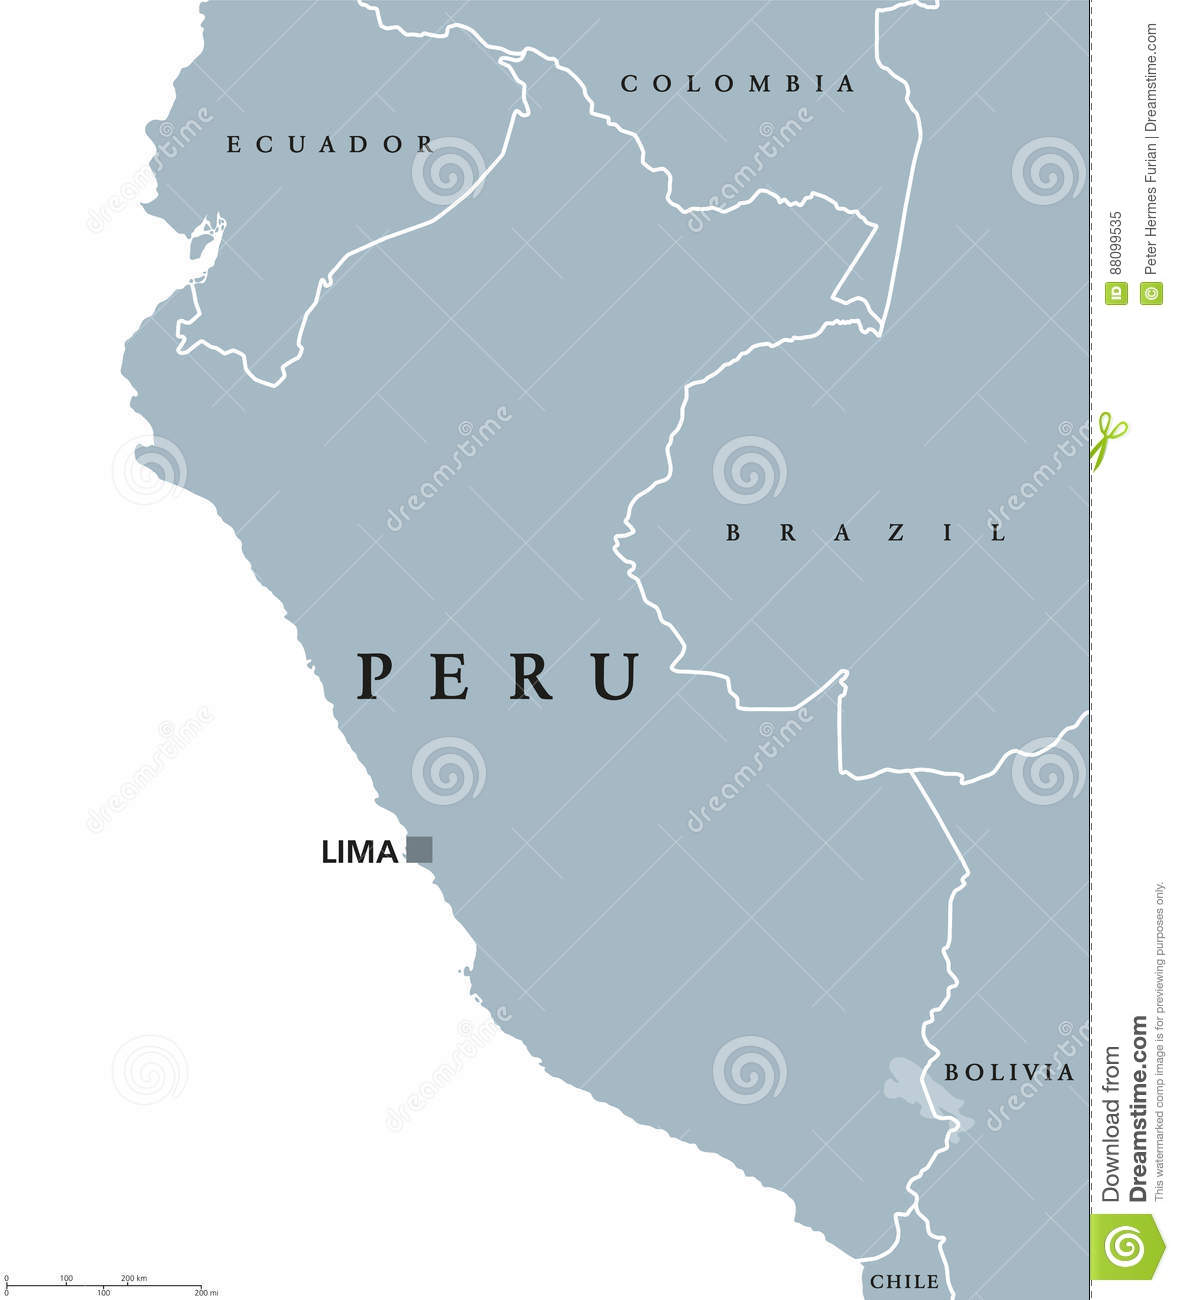 Peru political map stock vector. Illustration of border - 88099535 on map of mexico, maps in south america, colombia map in america, map of africa, costa rica, map of patagonia south america, map of amazon basin south america, puerto rico, map of south america with argentina, machu picchu, map of the galapagos islands south america, lima south america, top 10 poorest cities in america, machu picchu peru south america, close up map of south america, peru in south america, nicaragua on map of south america, map of santiago south america, map of atacama desert south america, information on peru south america, map of aruba and south america, map of trinidad and tobago south america, political map of south america,